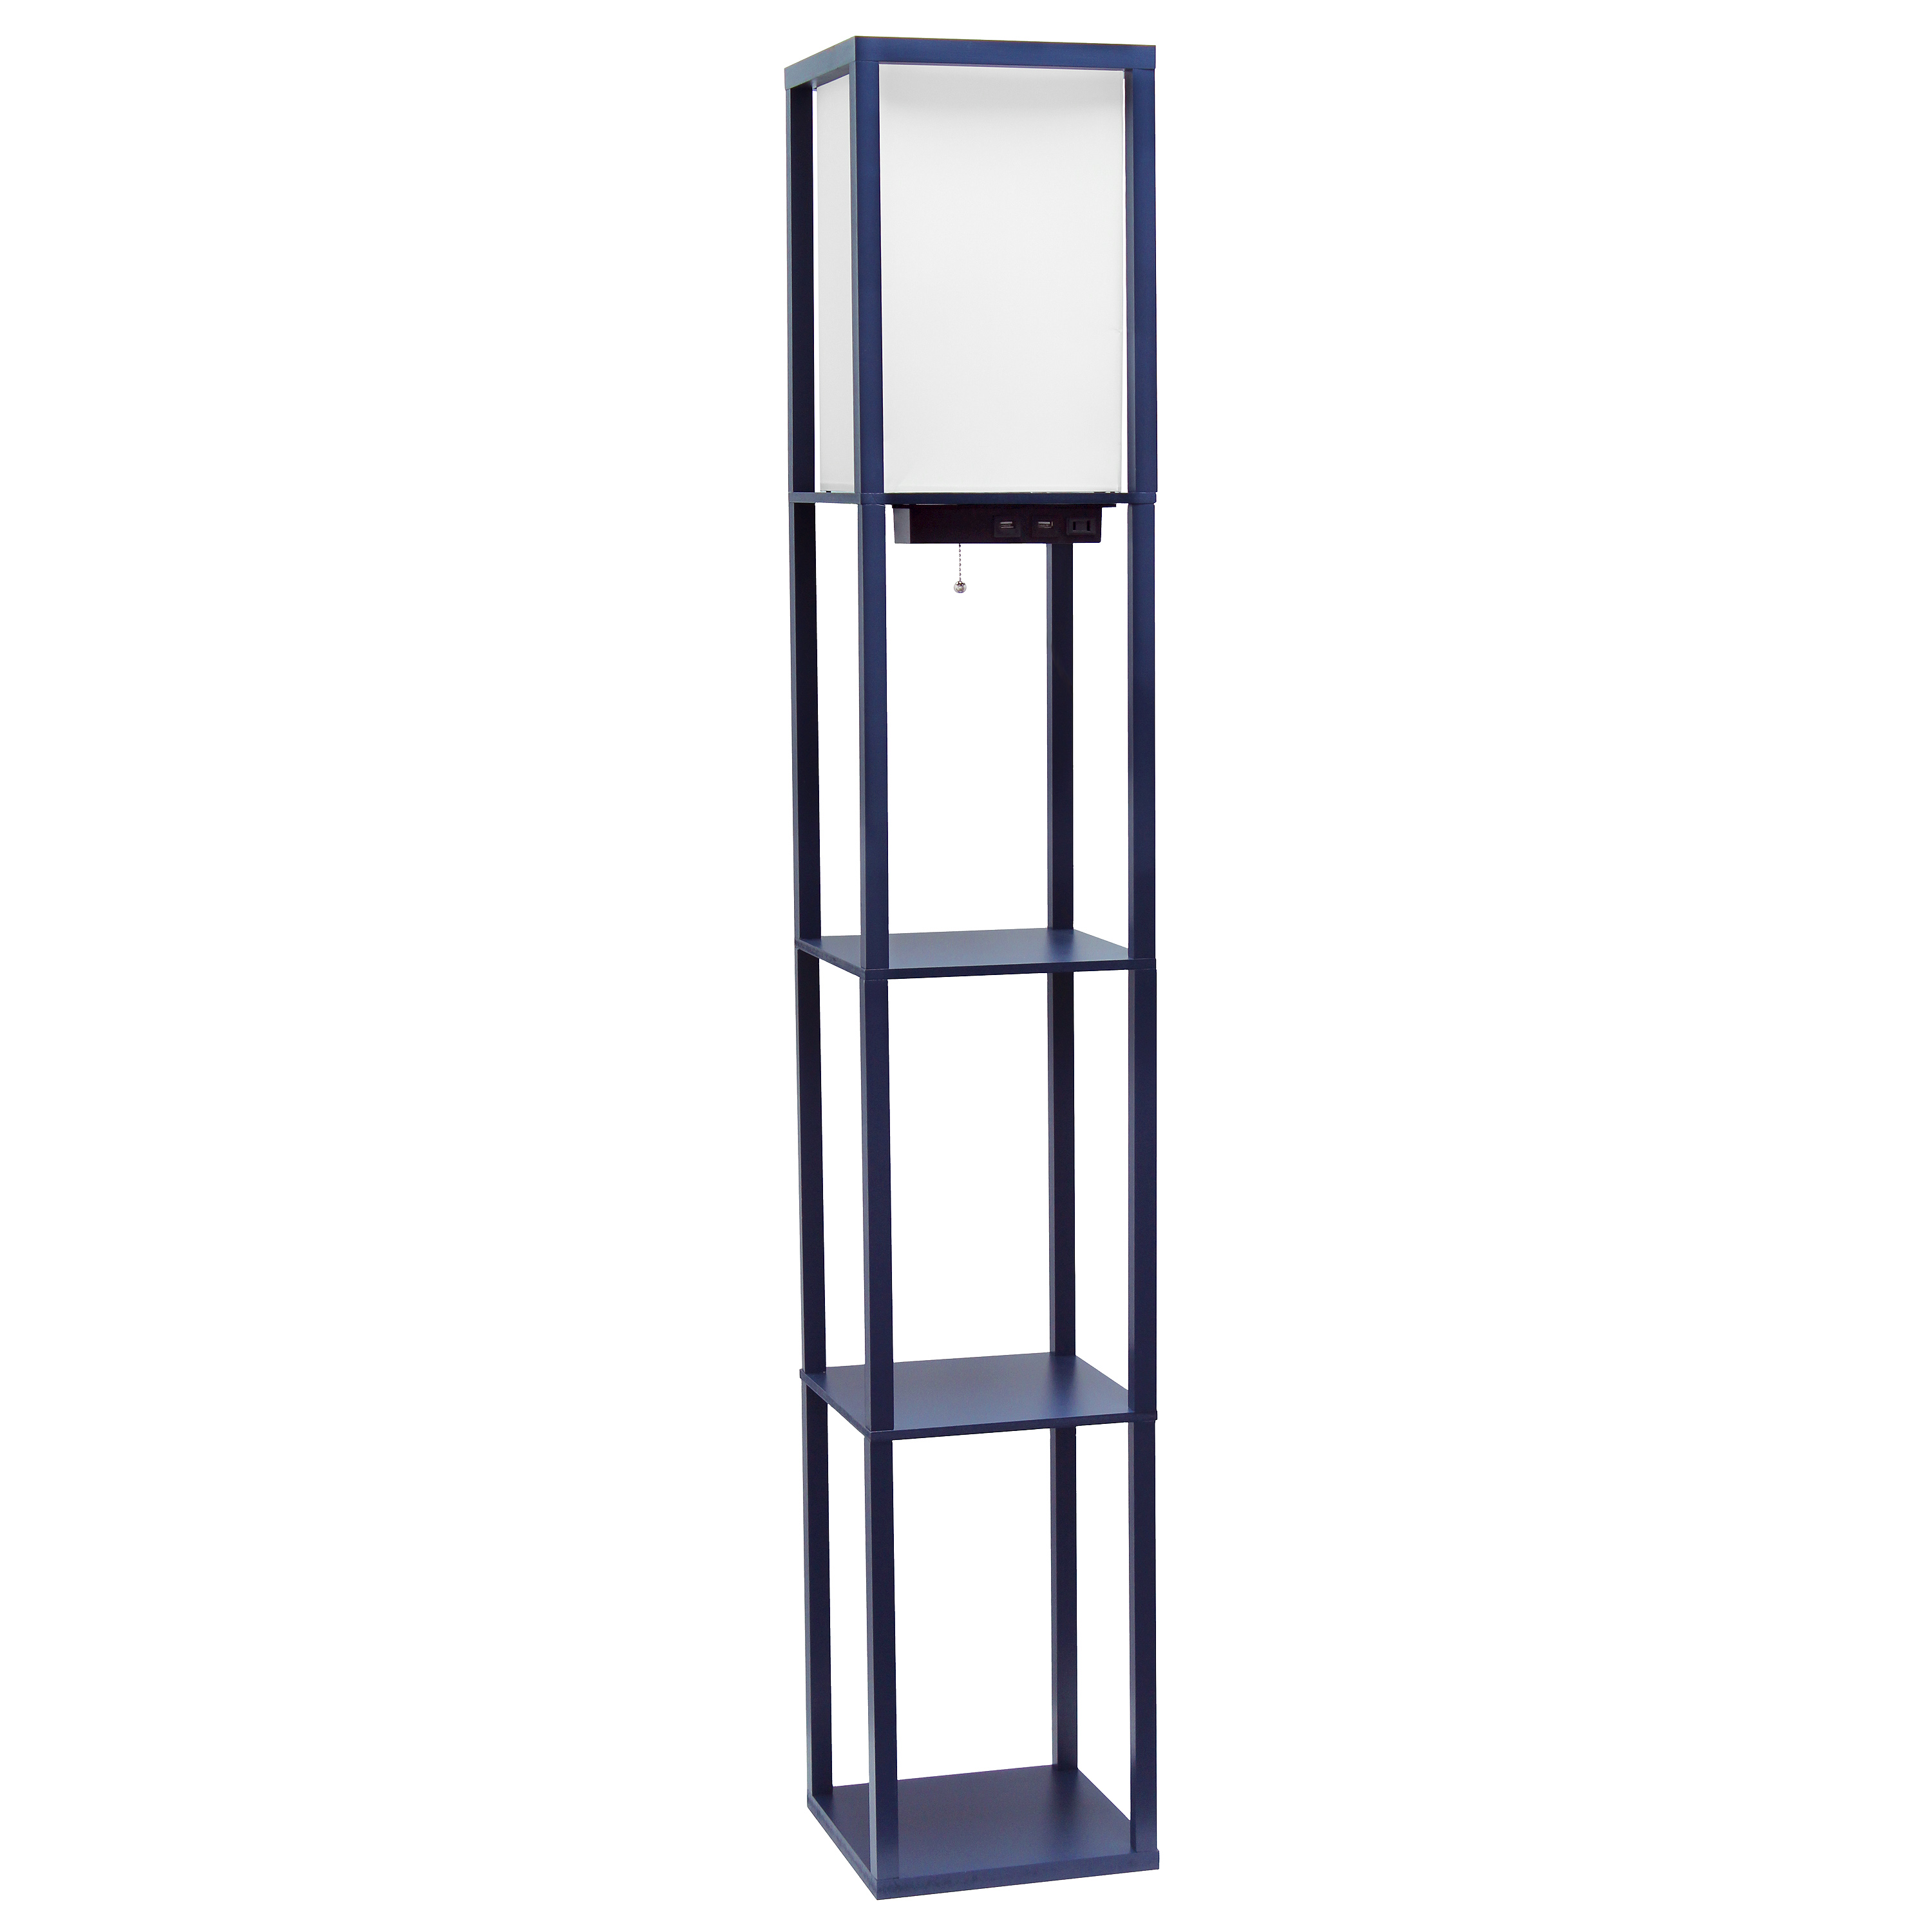 Simple Designs Floor Lamp Etagere Organizer Storage Shelf with 2 USB Charging Ports, 1 Charging Outlet and Linen Shade, Navy